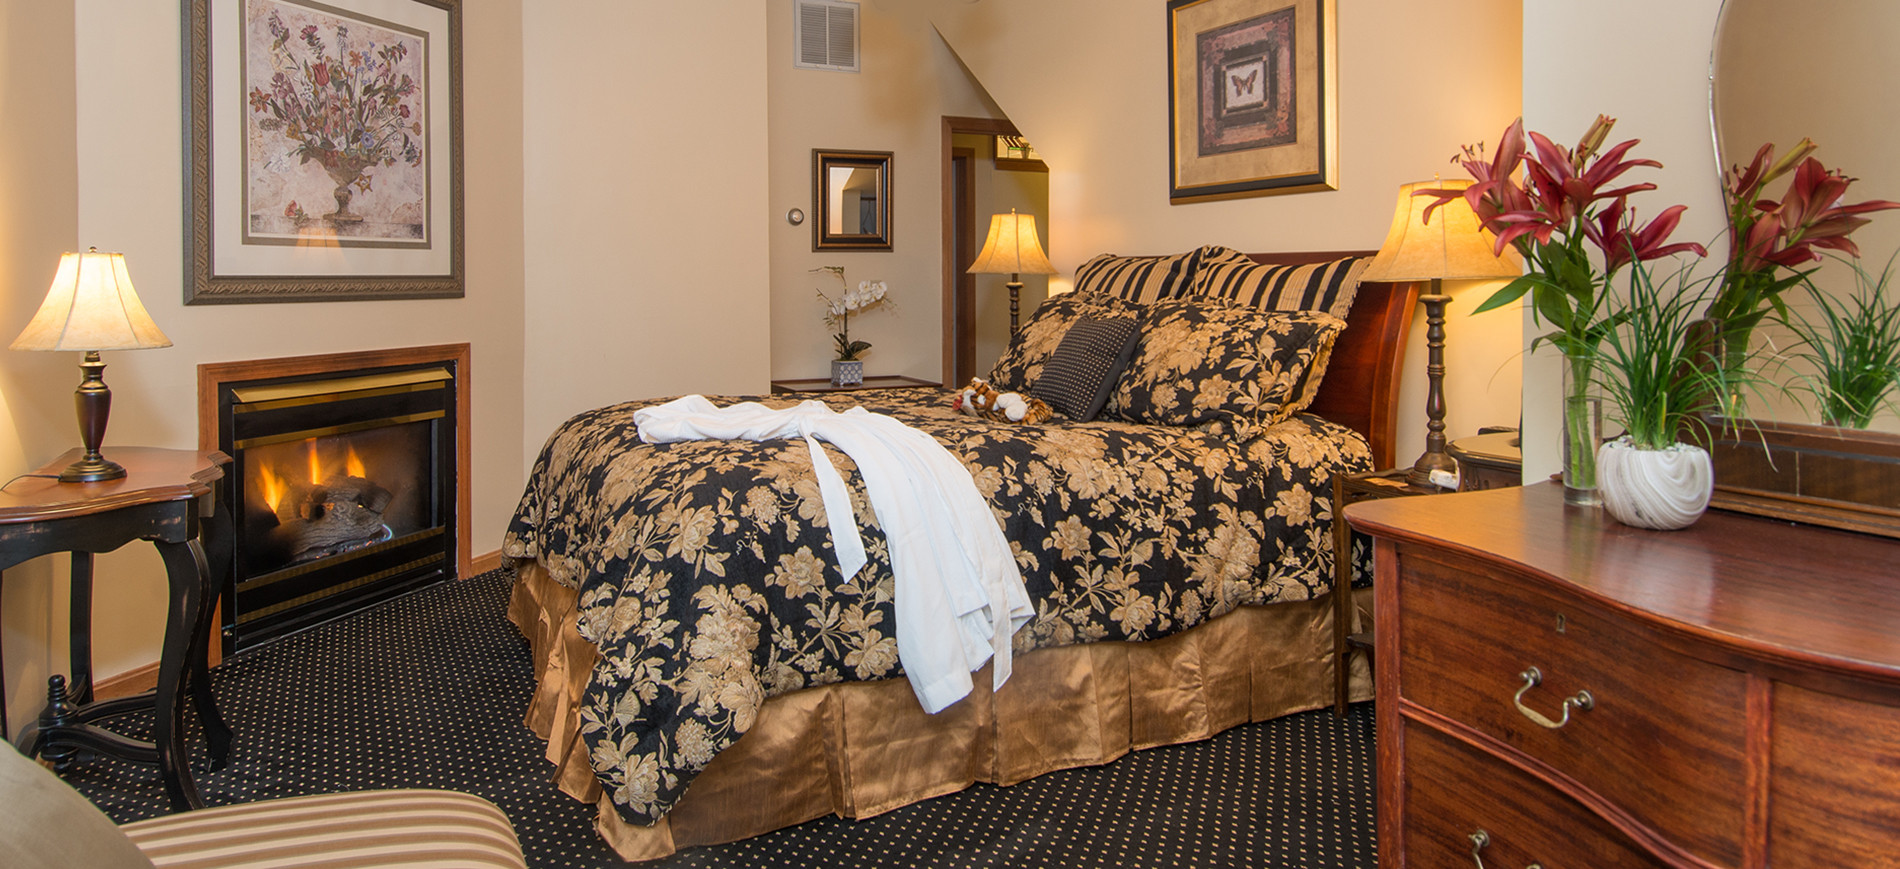 Chaise, table with lamp, fireplace with picture above, queen sleigh bed with gold & black bedding, chest with mirror above